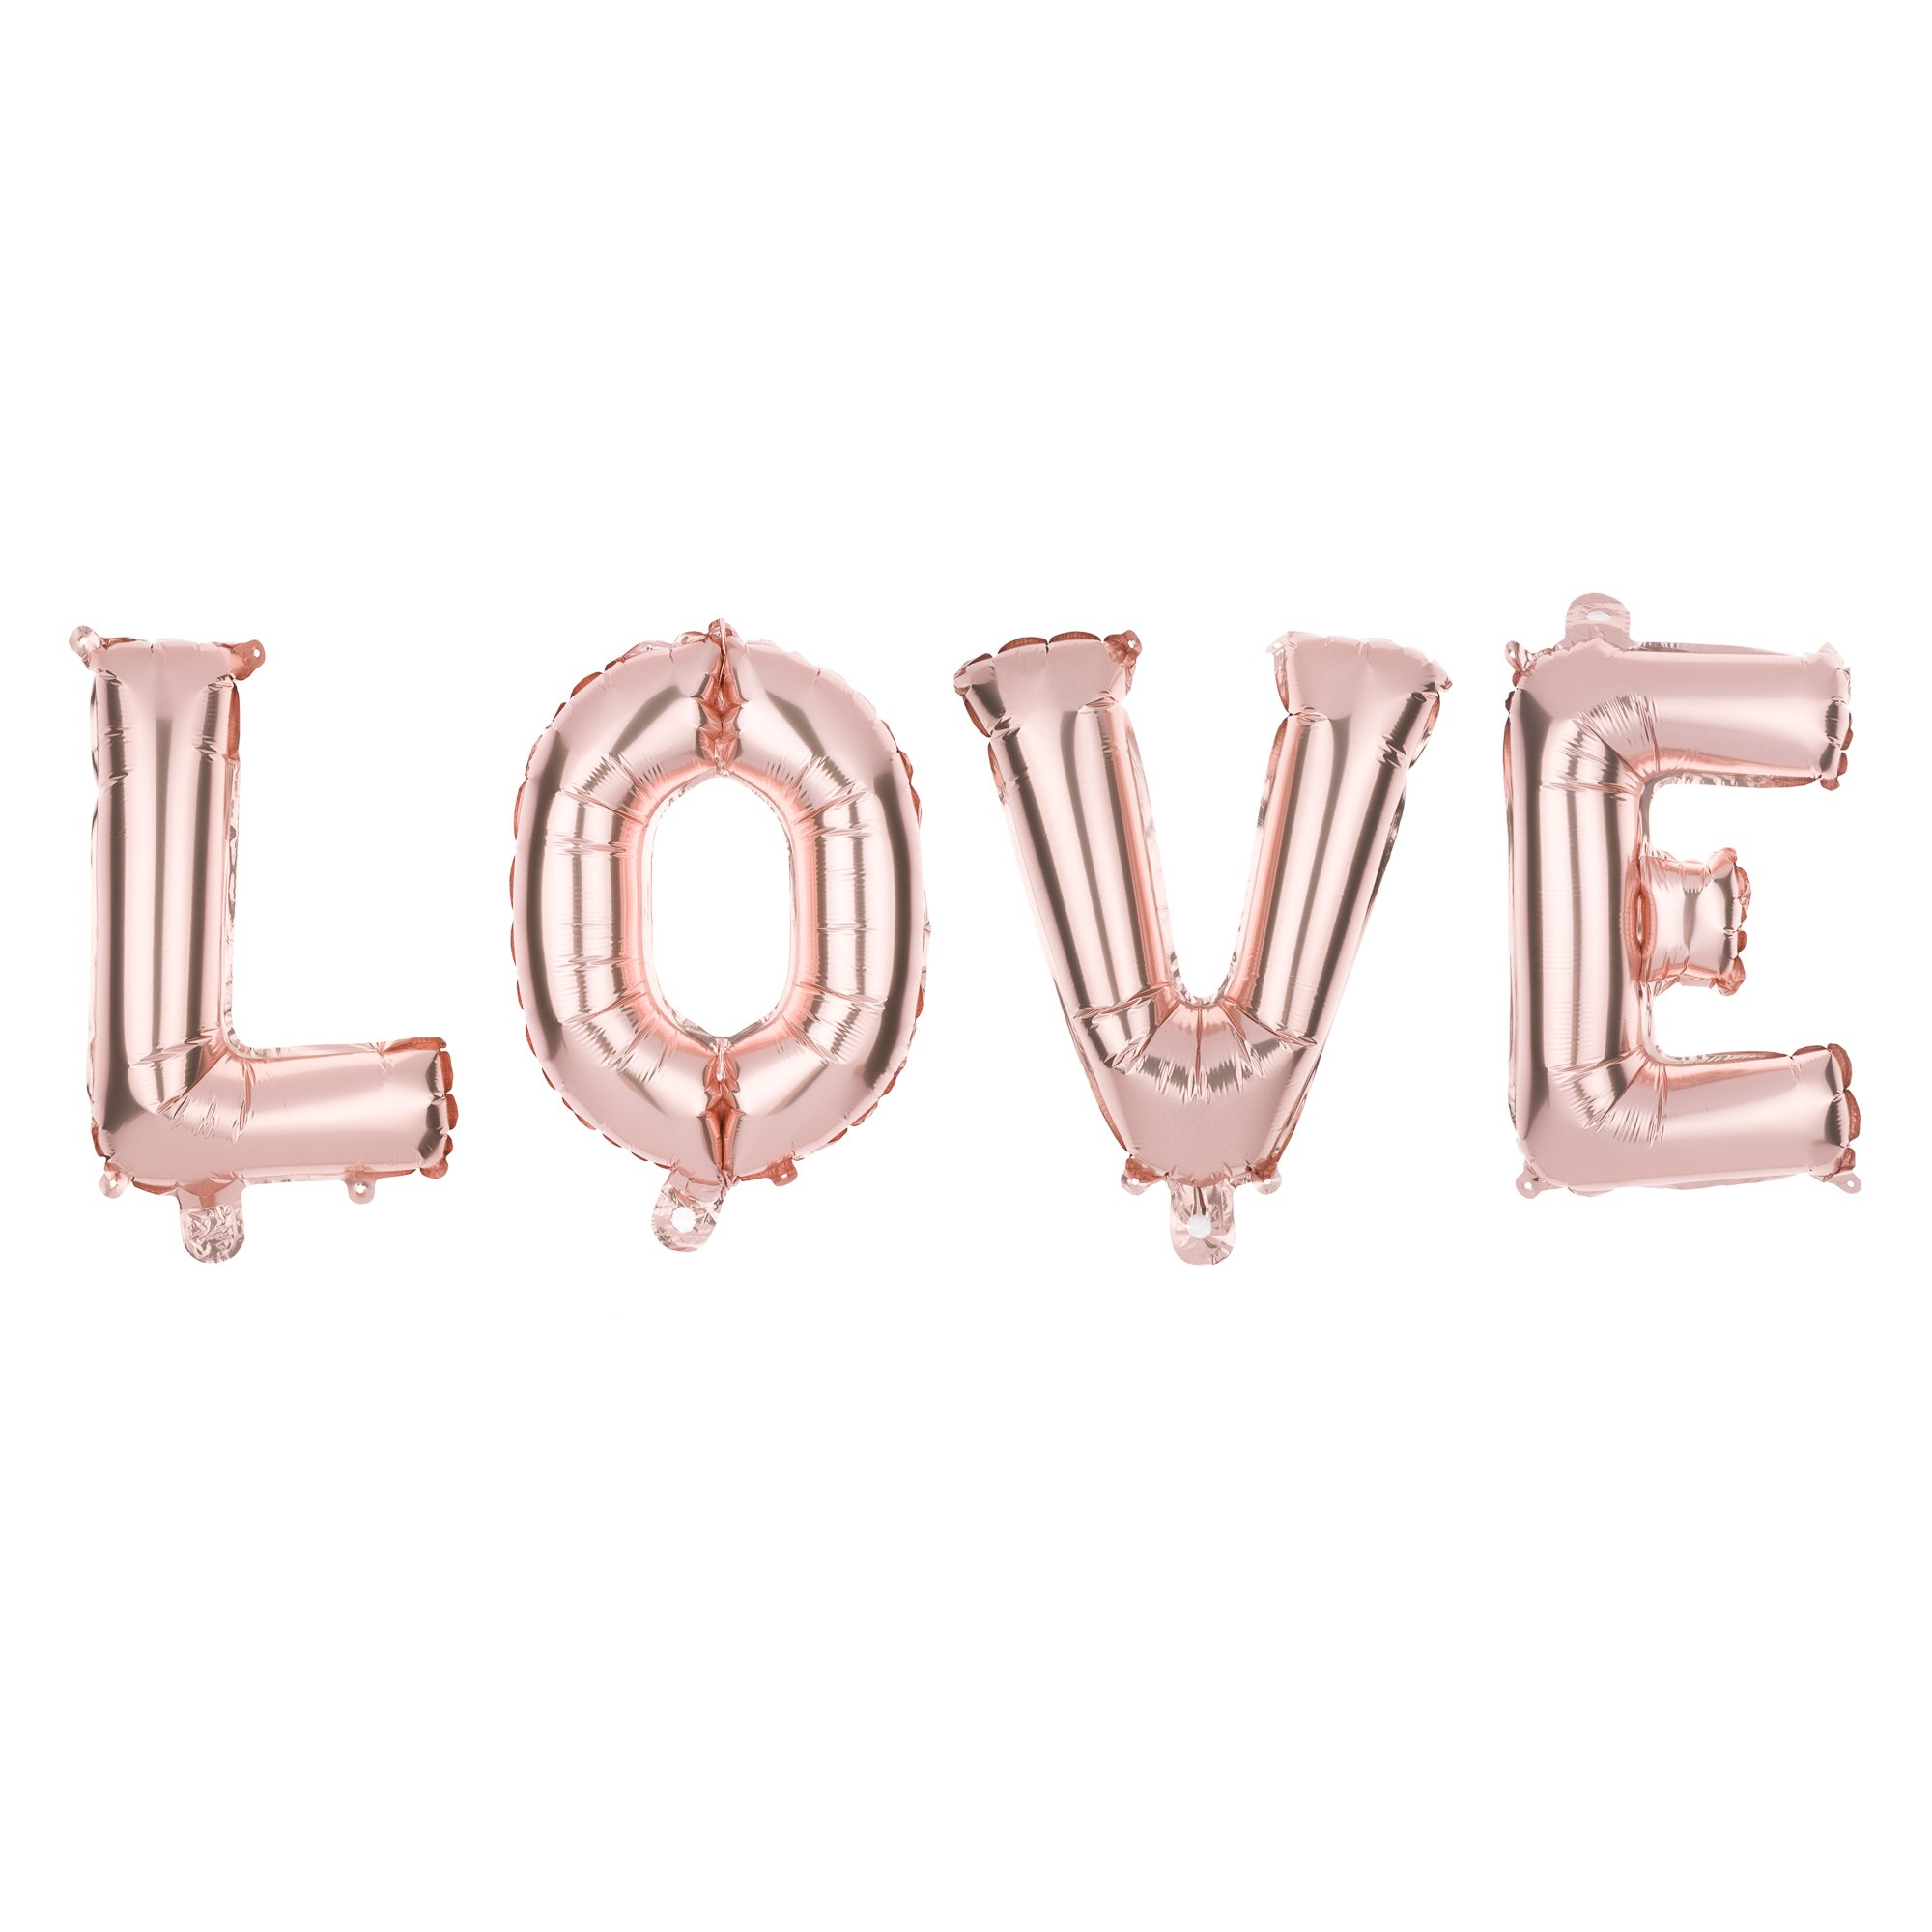 Ella Celebration LOVE Letter Balloons, Giant Balloon Letters, 25 Inch Wedding Decorations (Rose Gold, 25 Inch)